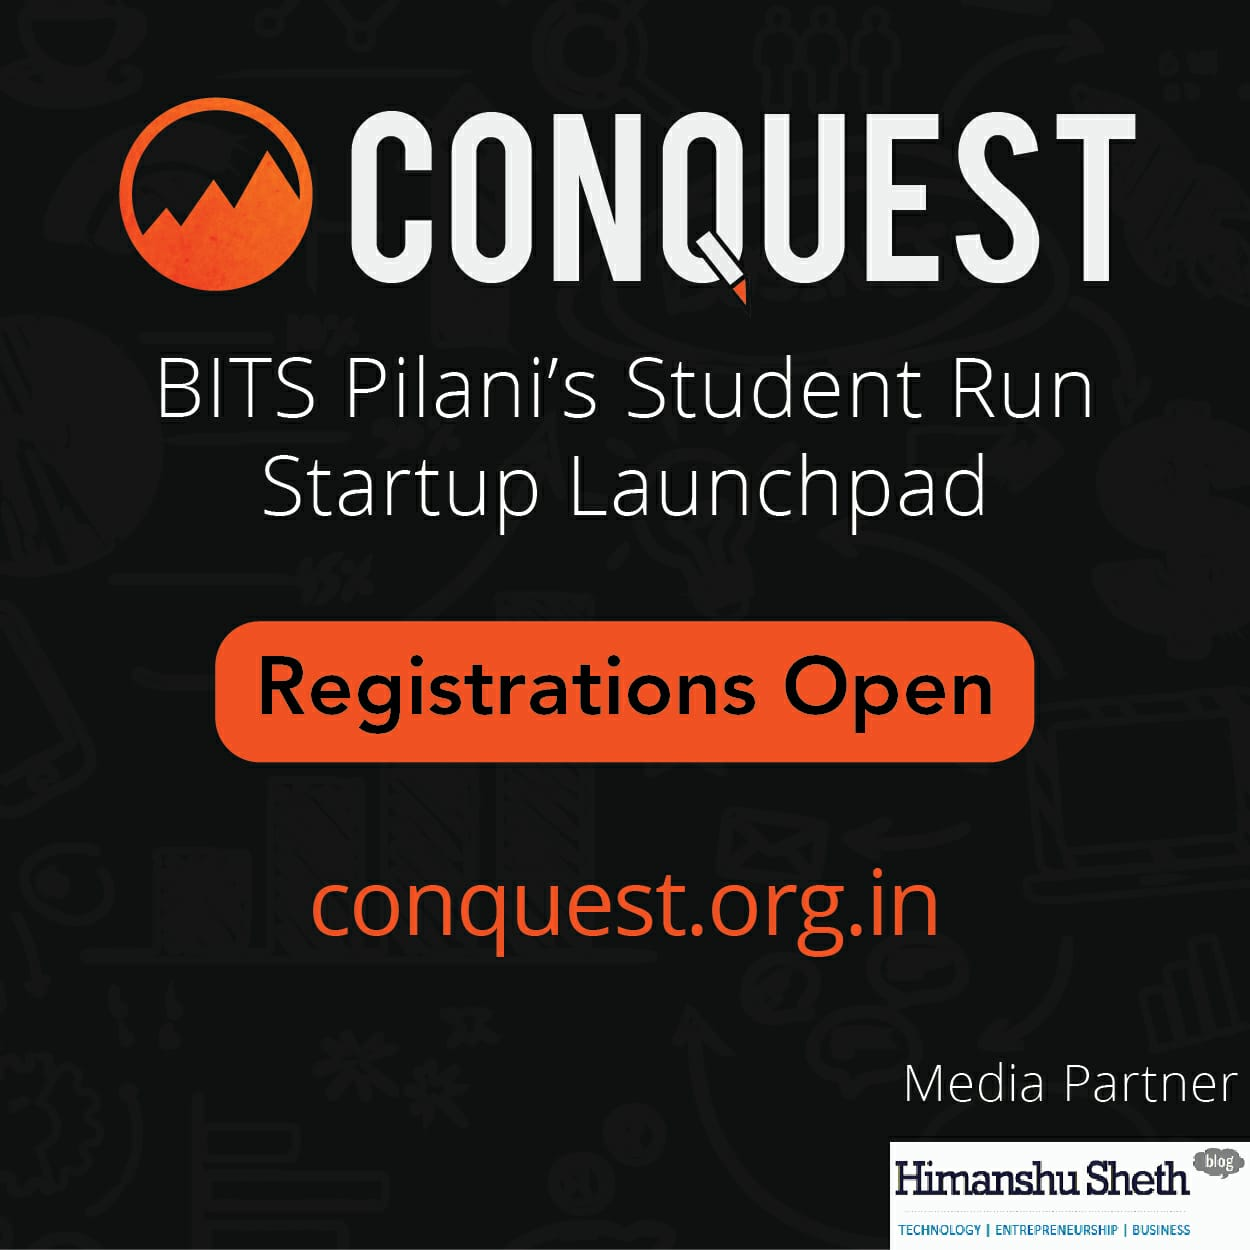 Conquest - India's first Student-Run Startup Launchpad by BITS Pilani